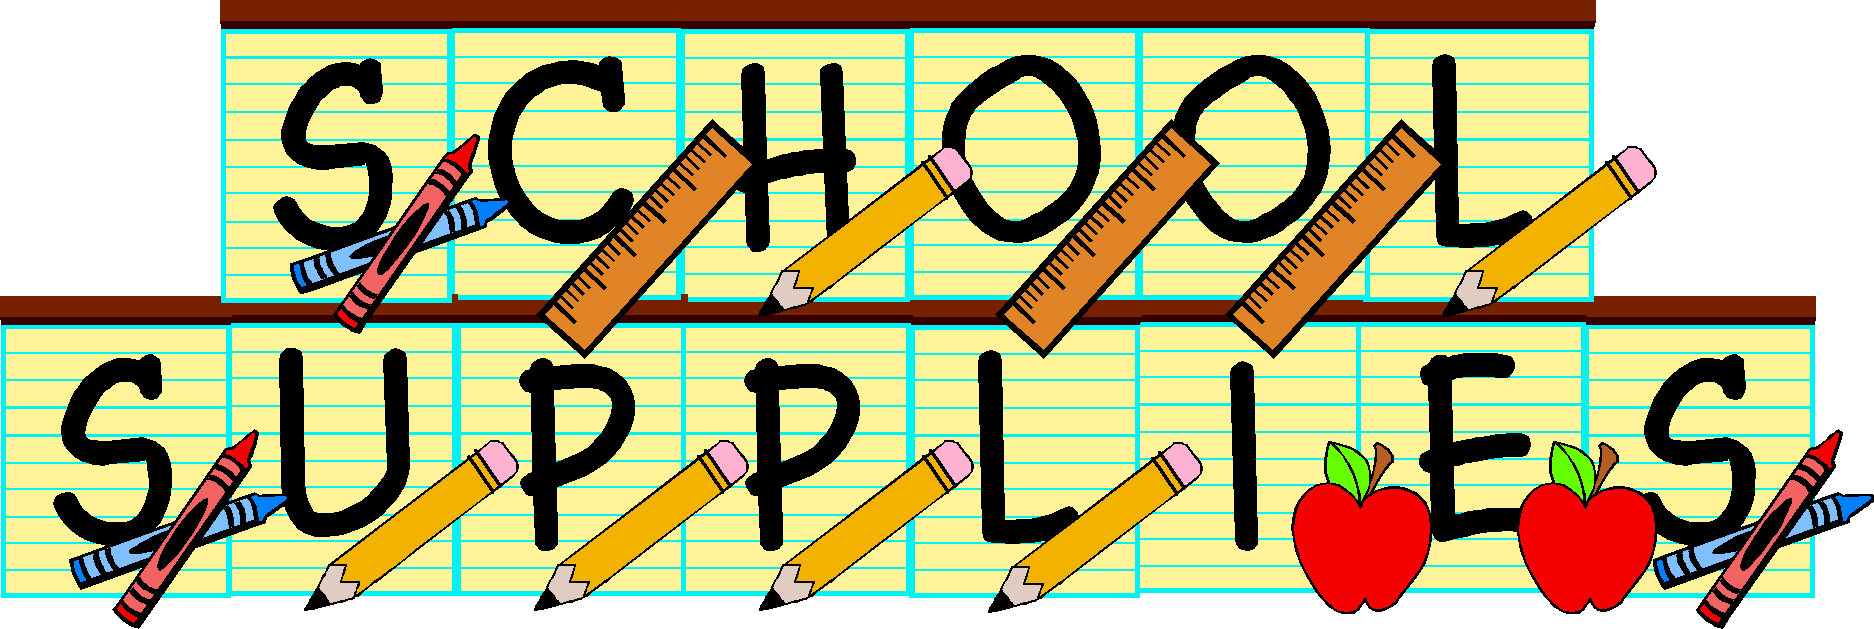 Free School Supplies Cliparts, Download Free Clip Art, Free.